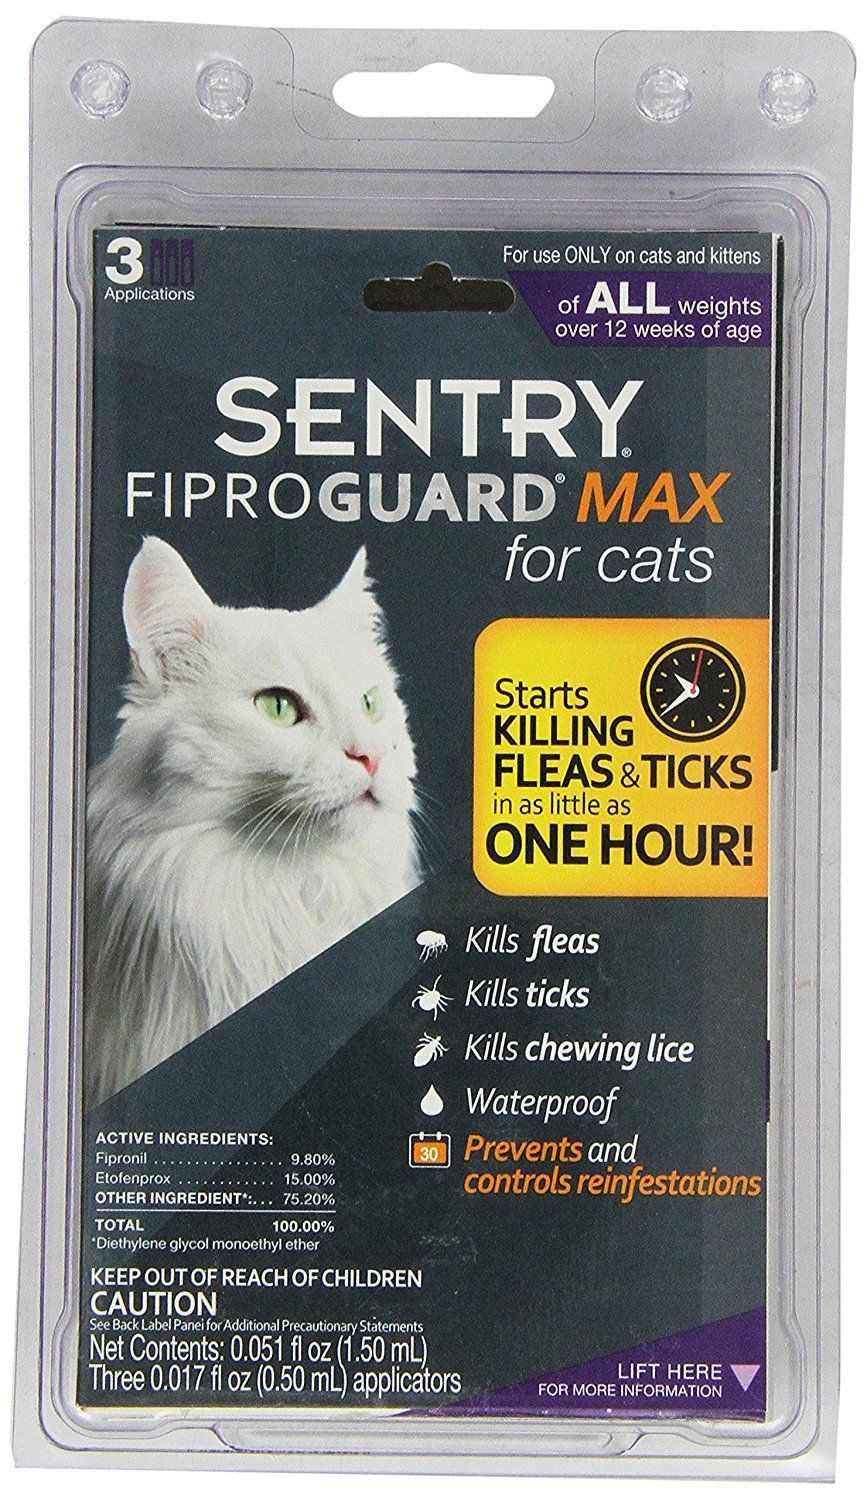 Sentry Fiproguard Max for Cats All Weights Over 12 Weeks